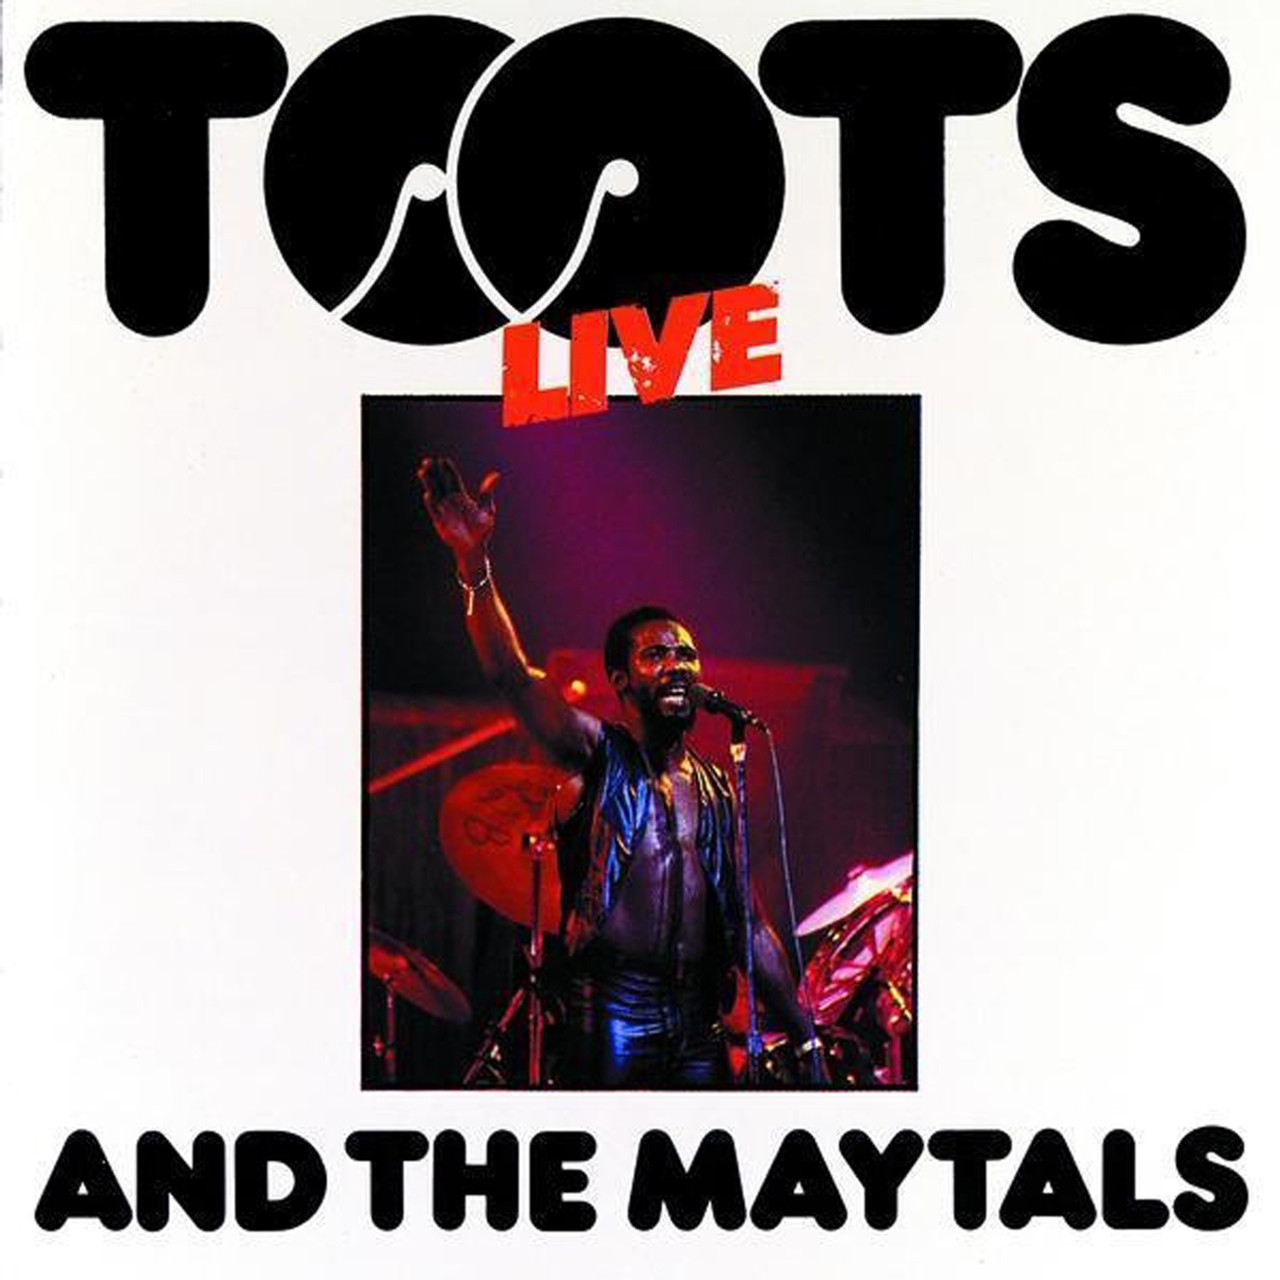 Live (Dvd) - Toots & The Maytals (DVD) - VP Reggae